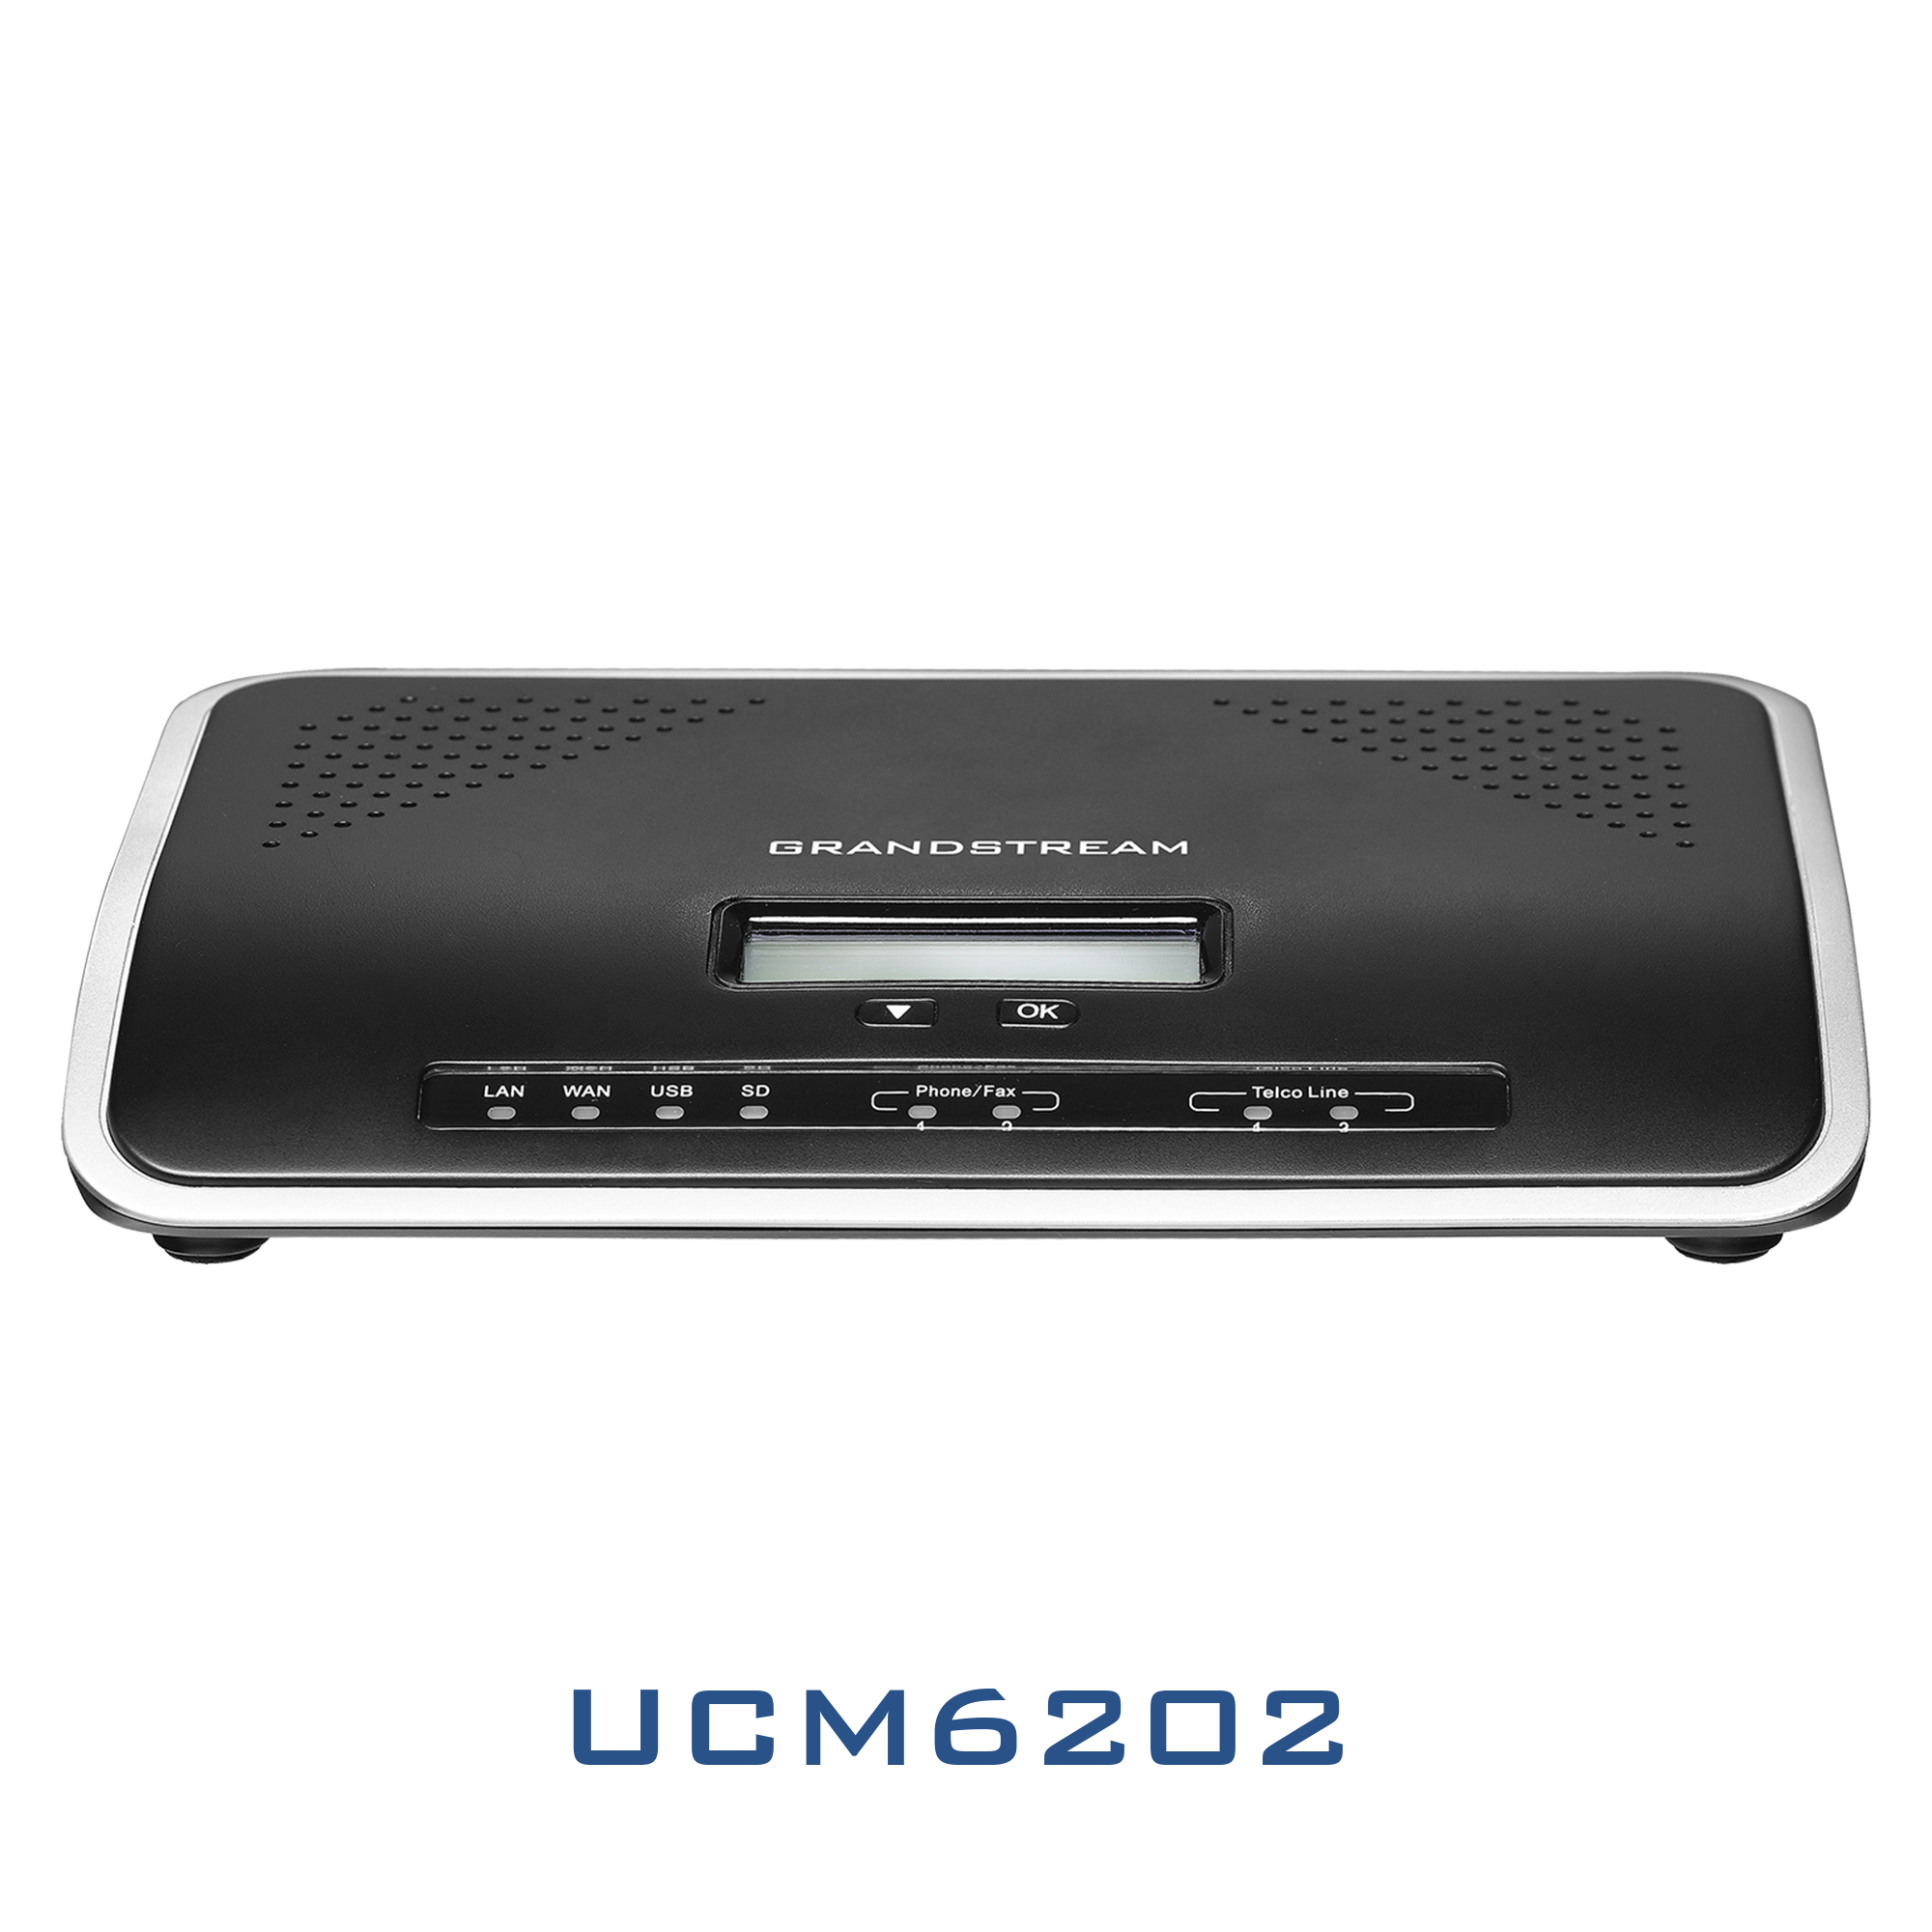 ucm6202_front_web